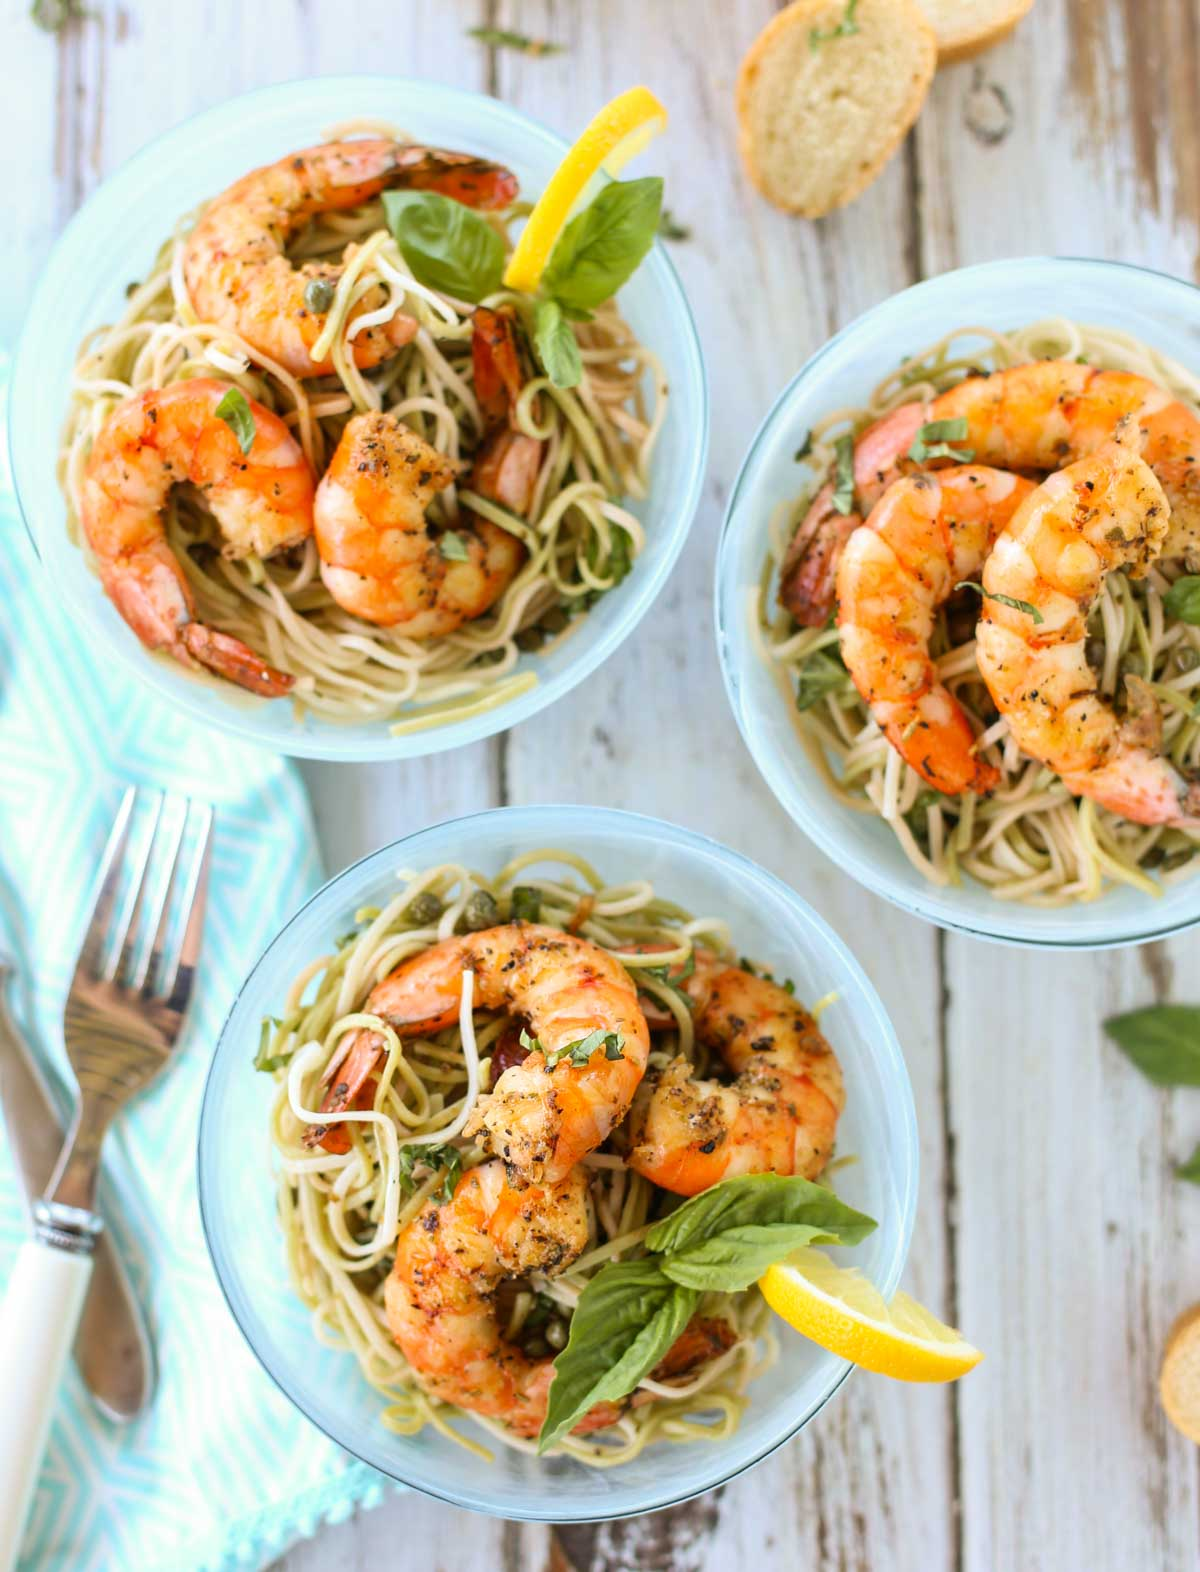 Creole Shrimp with Lemon Basil Pasta   Delicious Creole Spicy Shrimp atop a tangy lemon pasta, a perfect blend of flavors and textures! Serve for dinner at the beach or any poolside gathering. A wonderful simple treat for all! Yum!   WorldofPastabilities.com